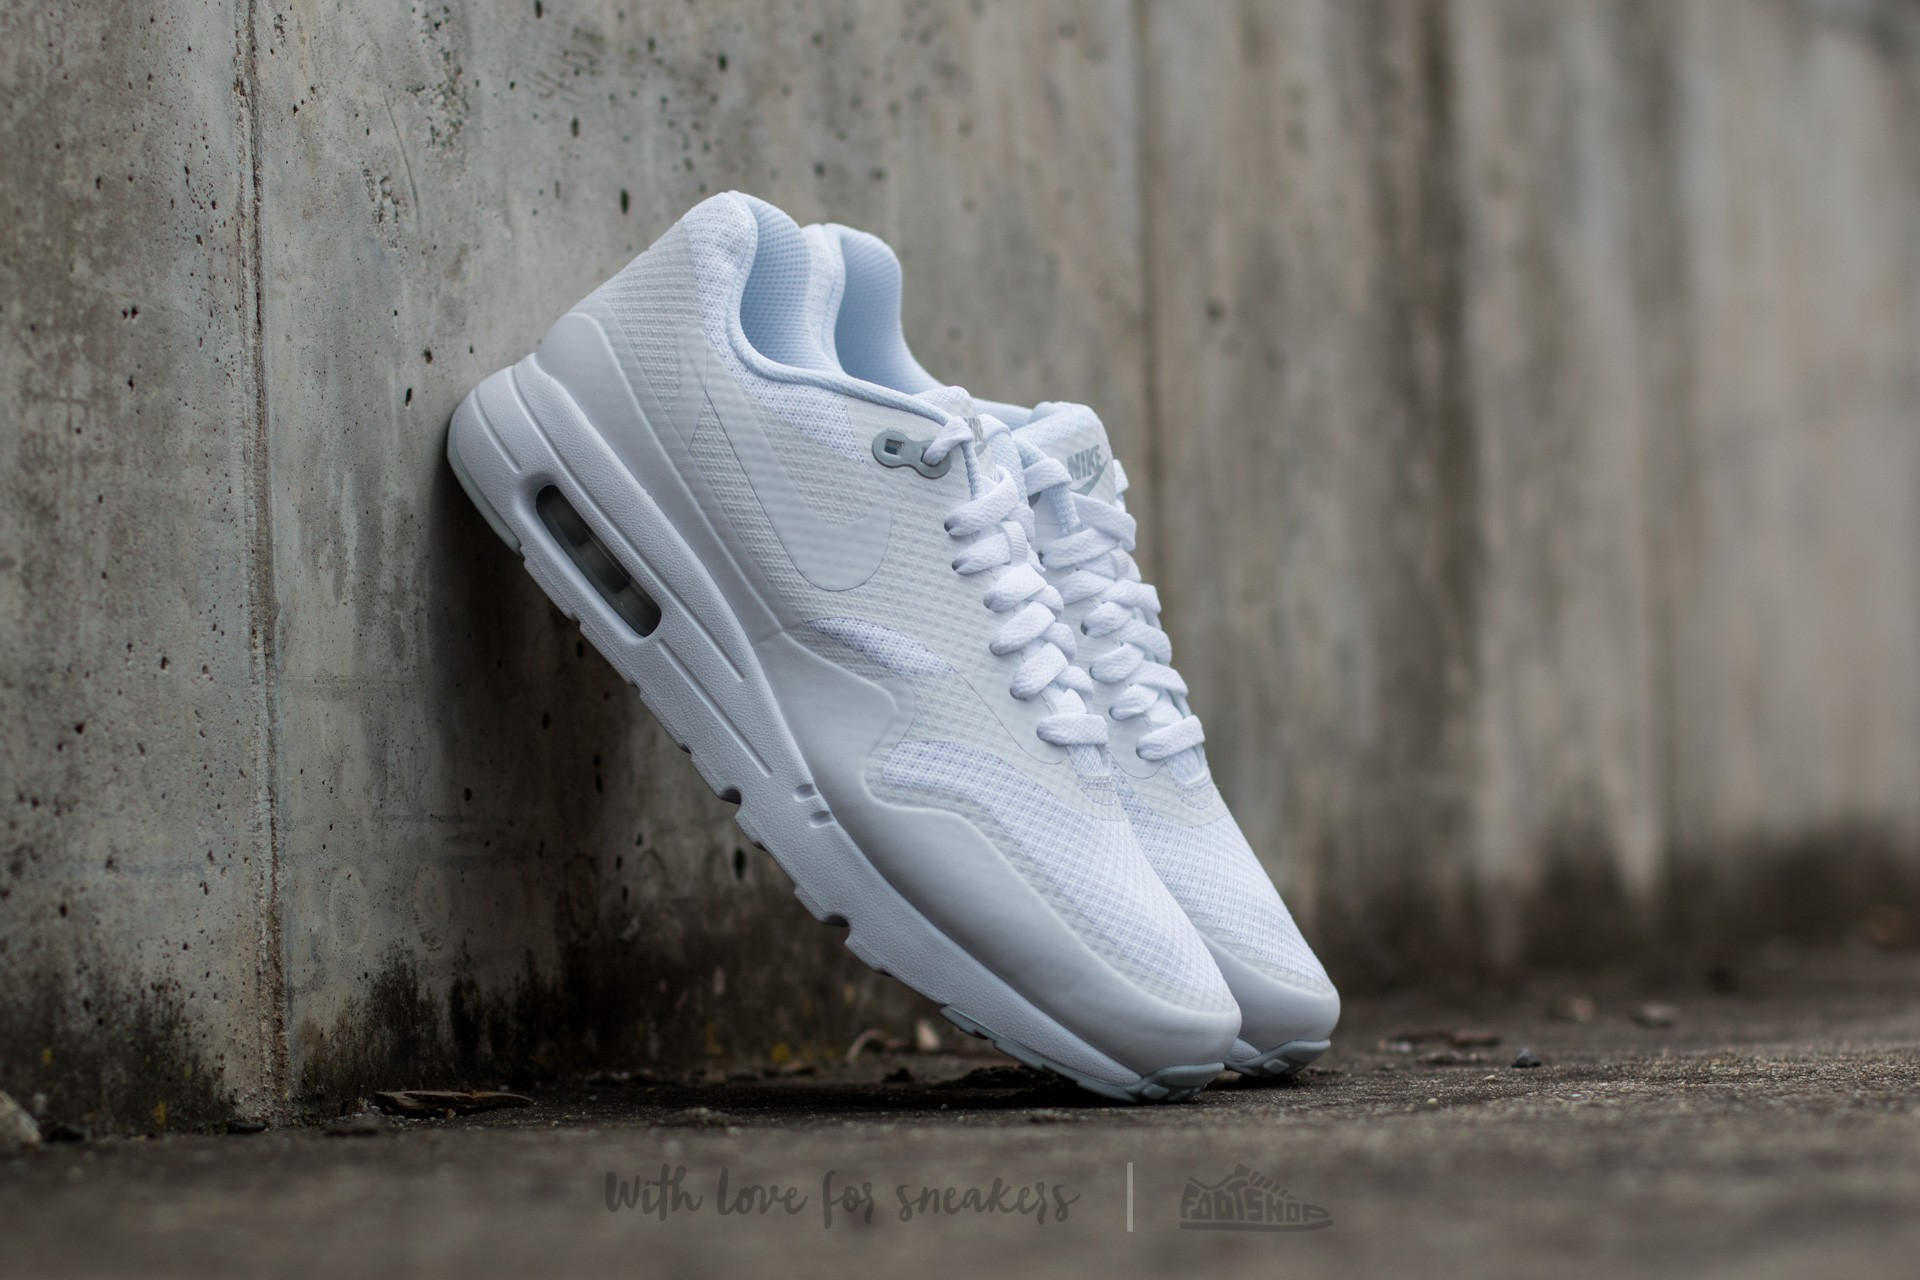 Altoparlante Helecho Amperio  Men's shoes Nike Air Max 1 Ultra Essential White/ White-Pure Platinum |  Footshop